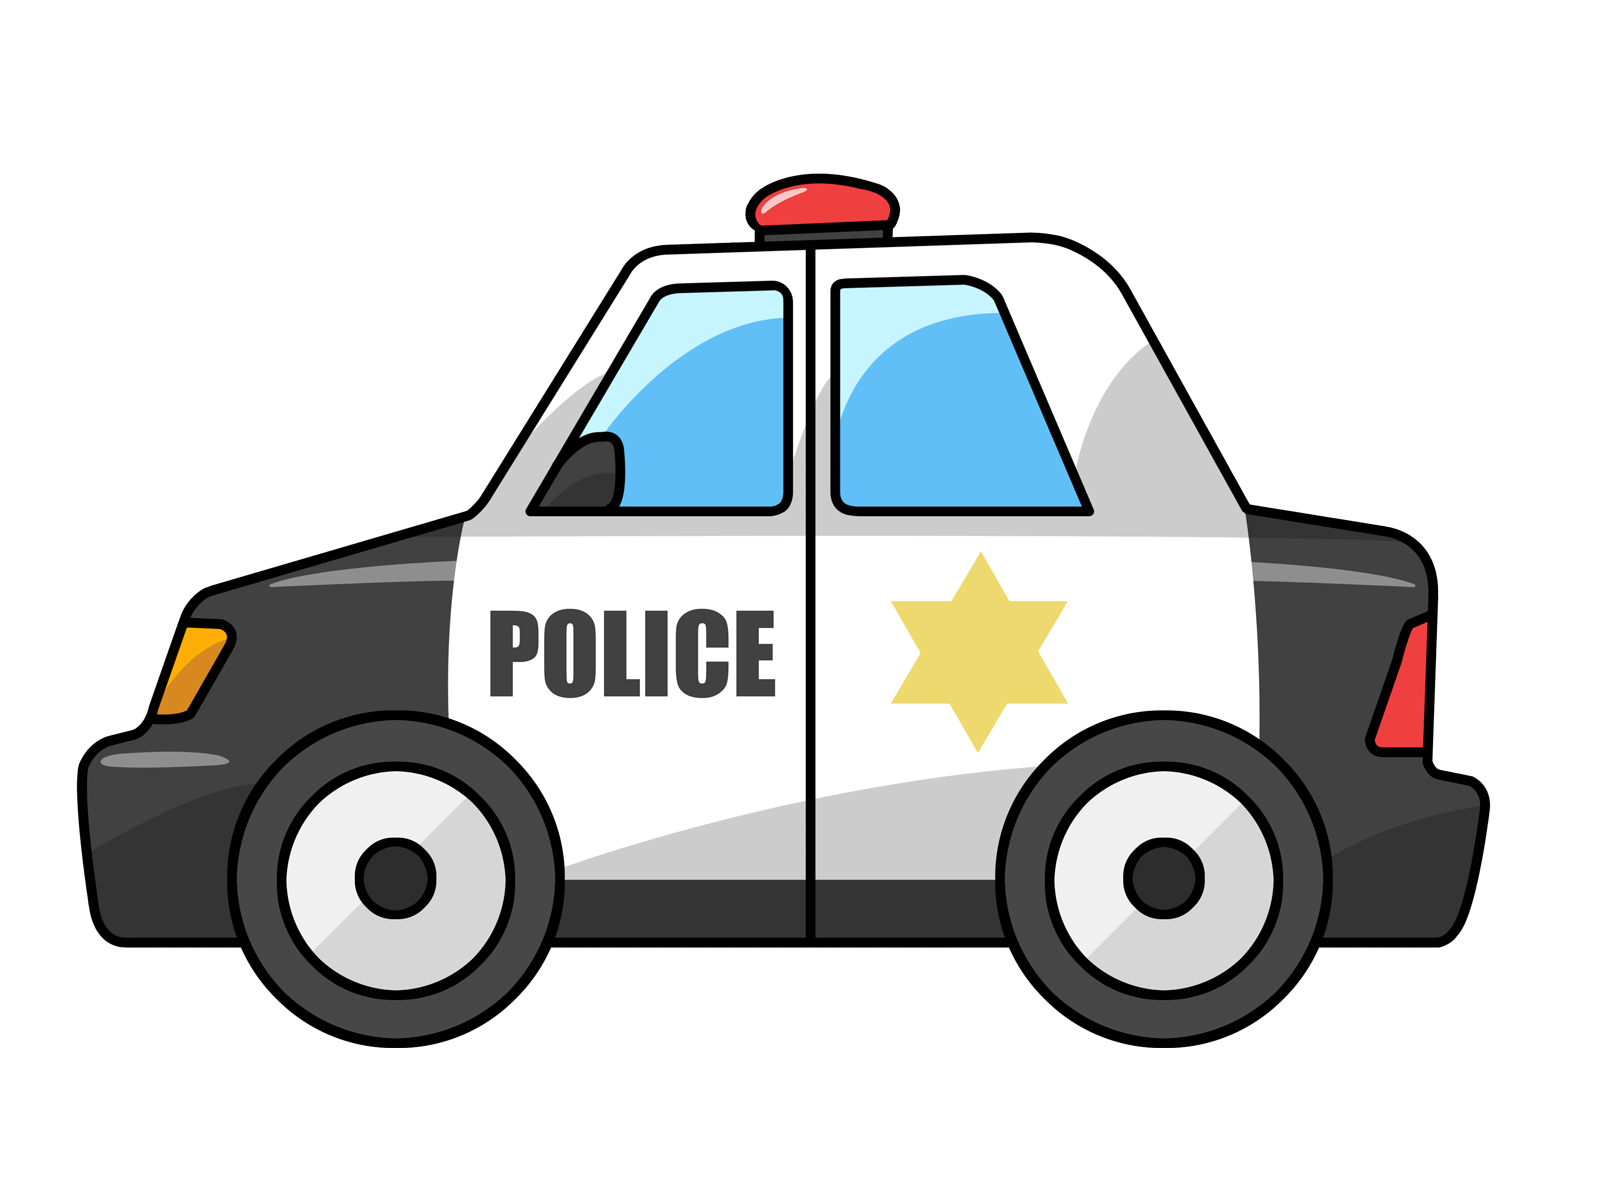 Policeman clipart police station sign. Free to use public